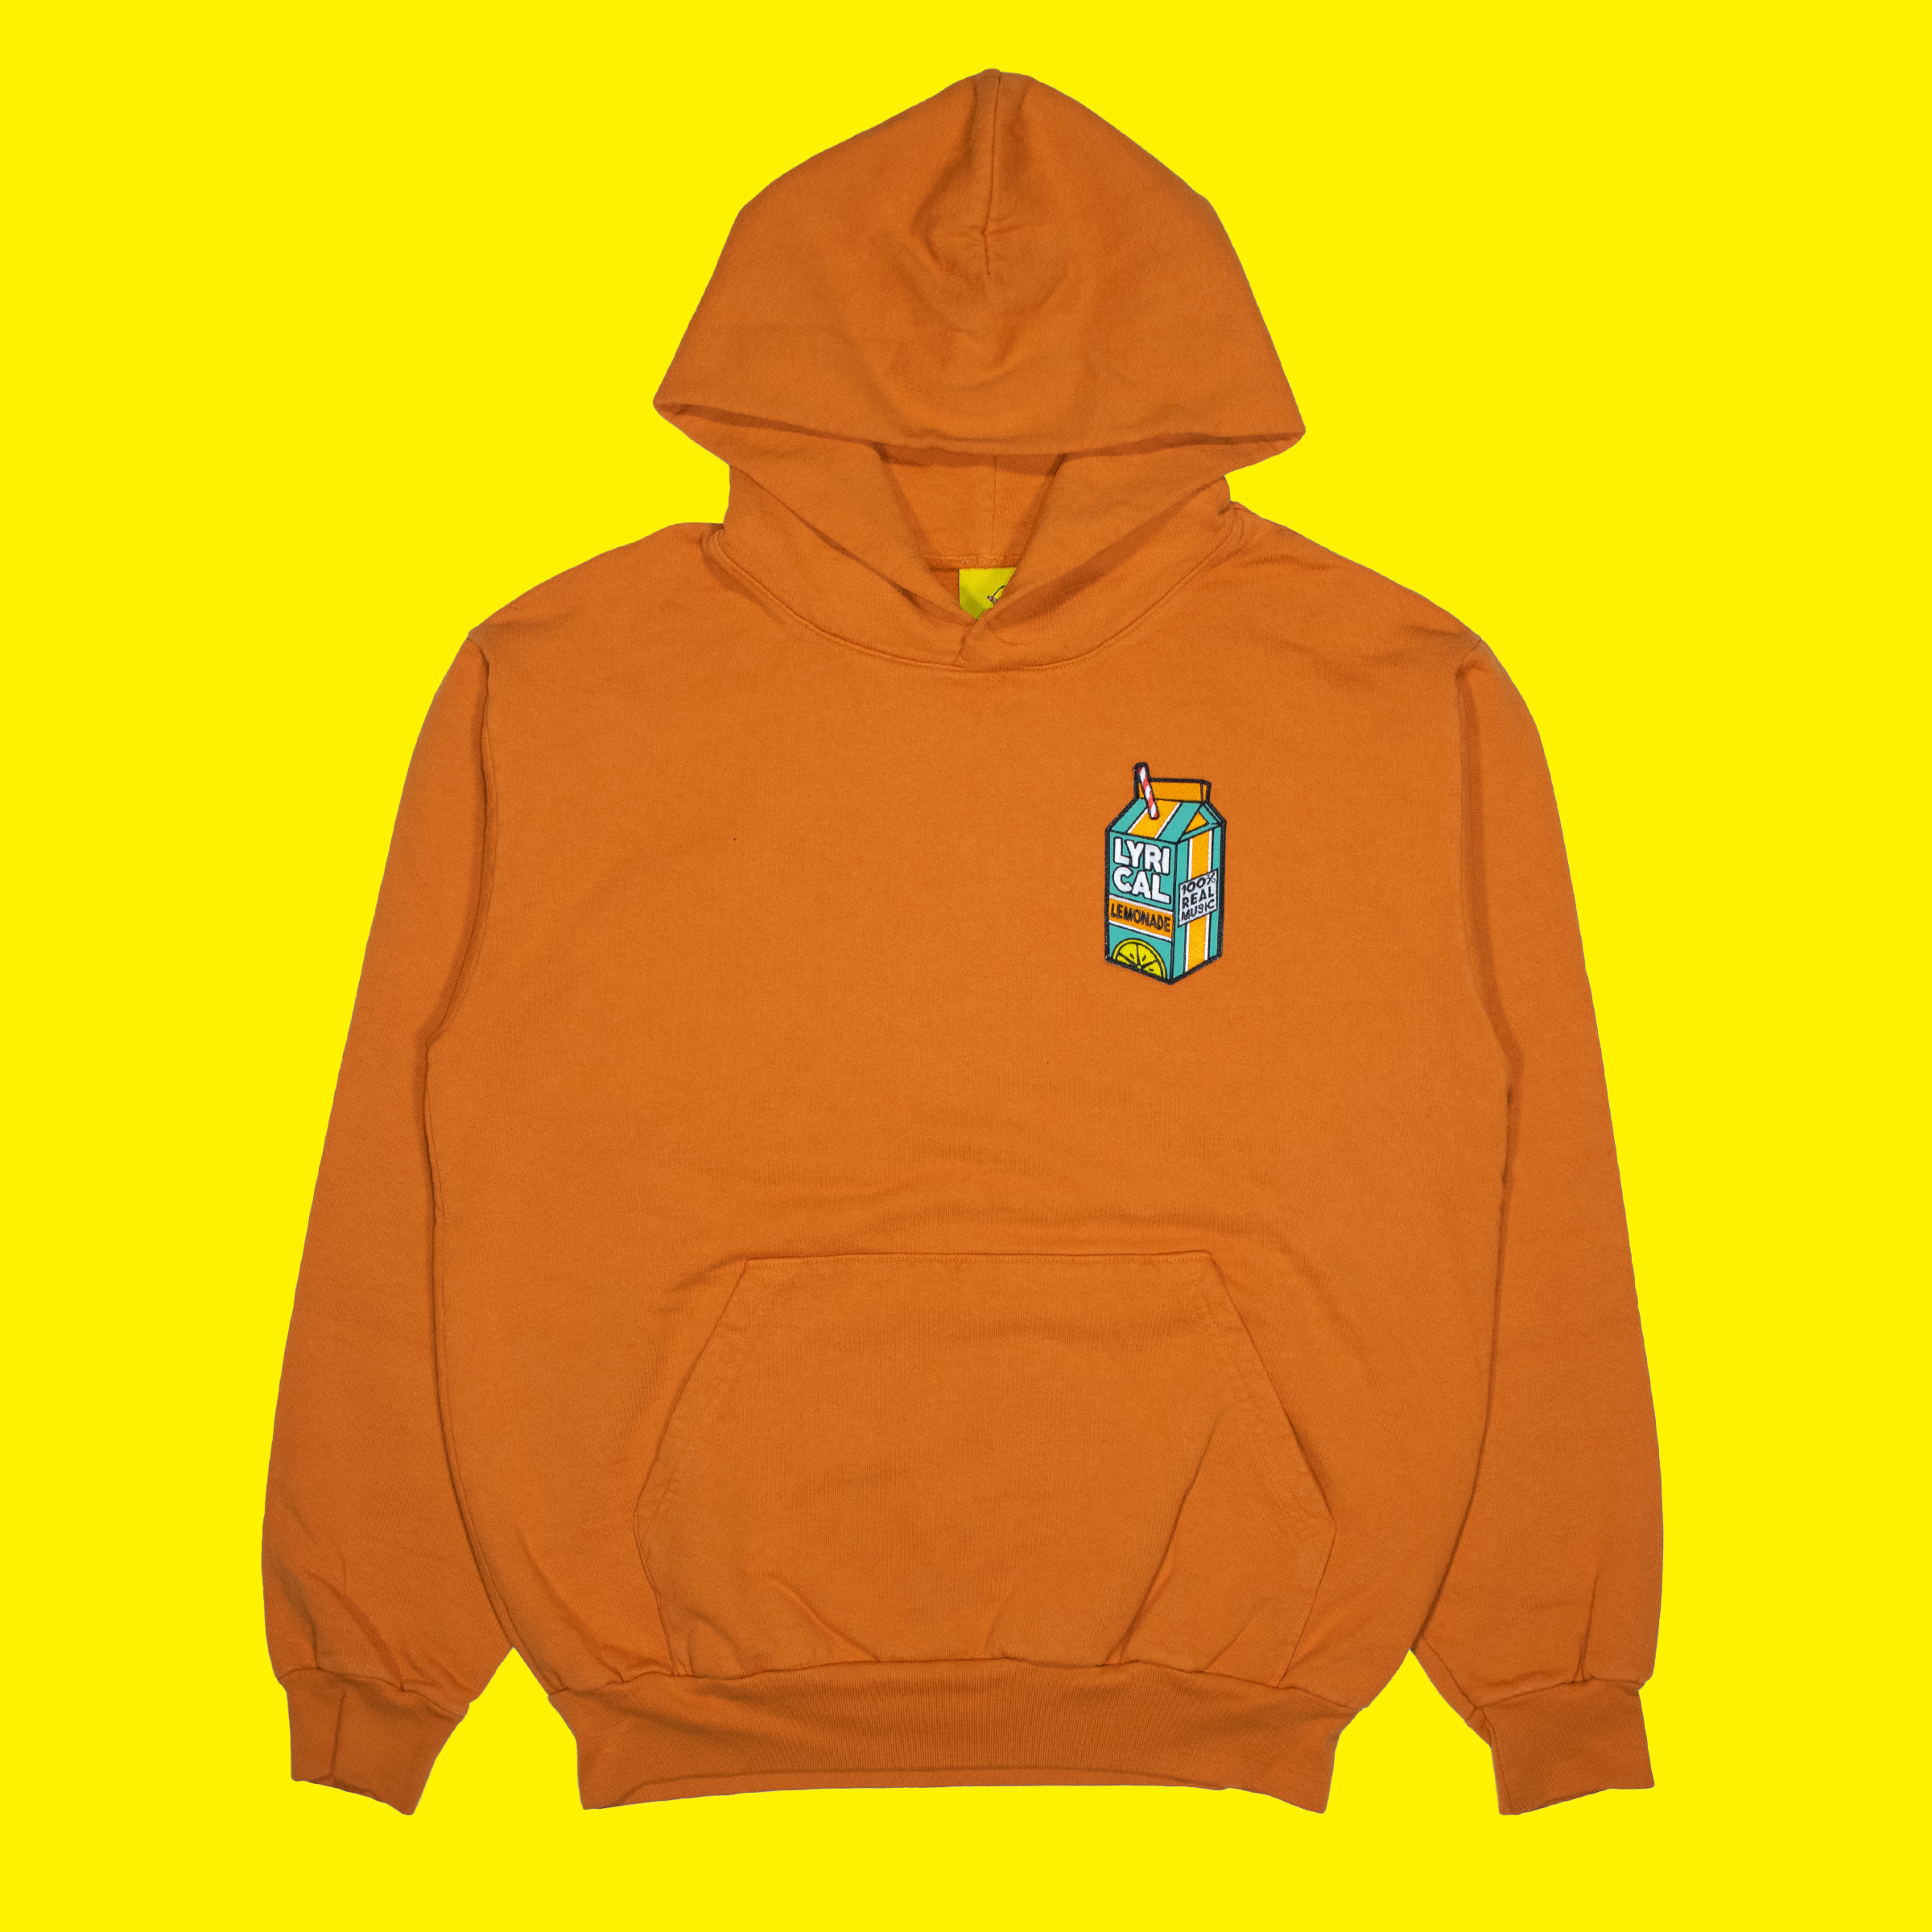 Carton Patch Hoodie in Orange